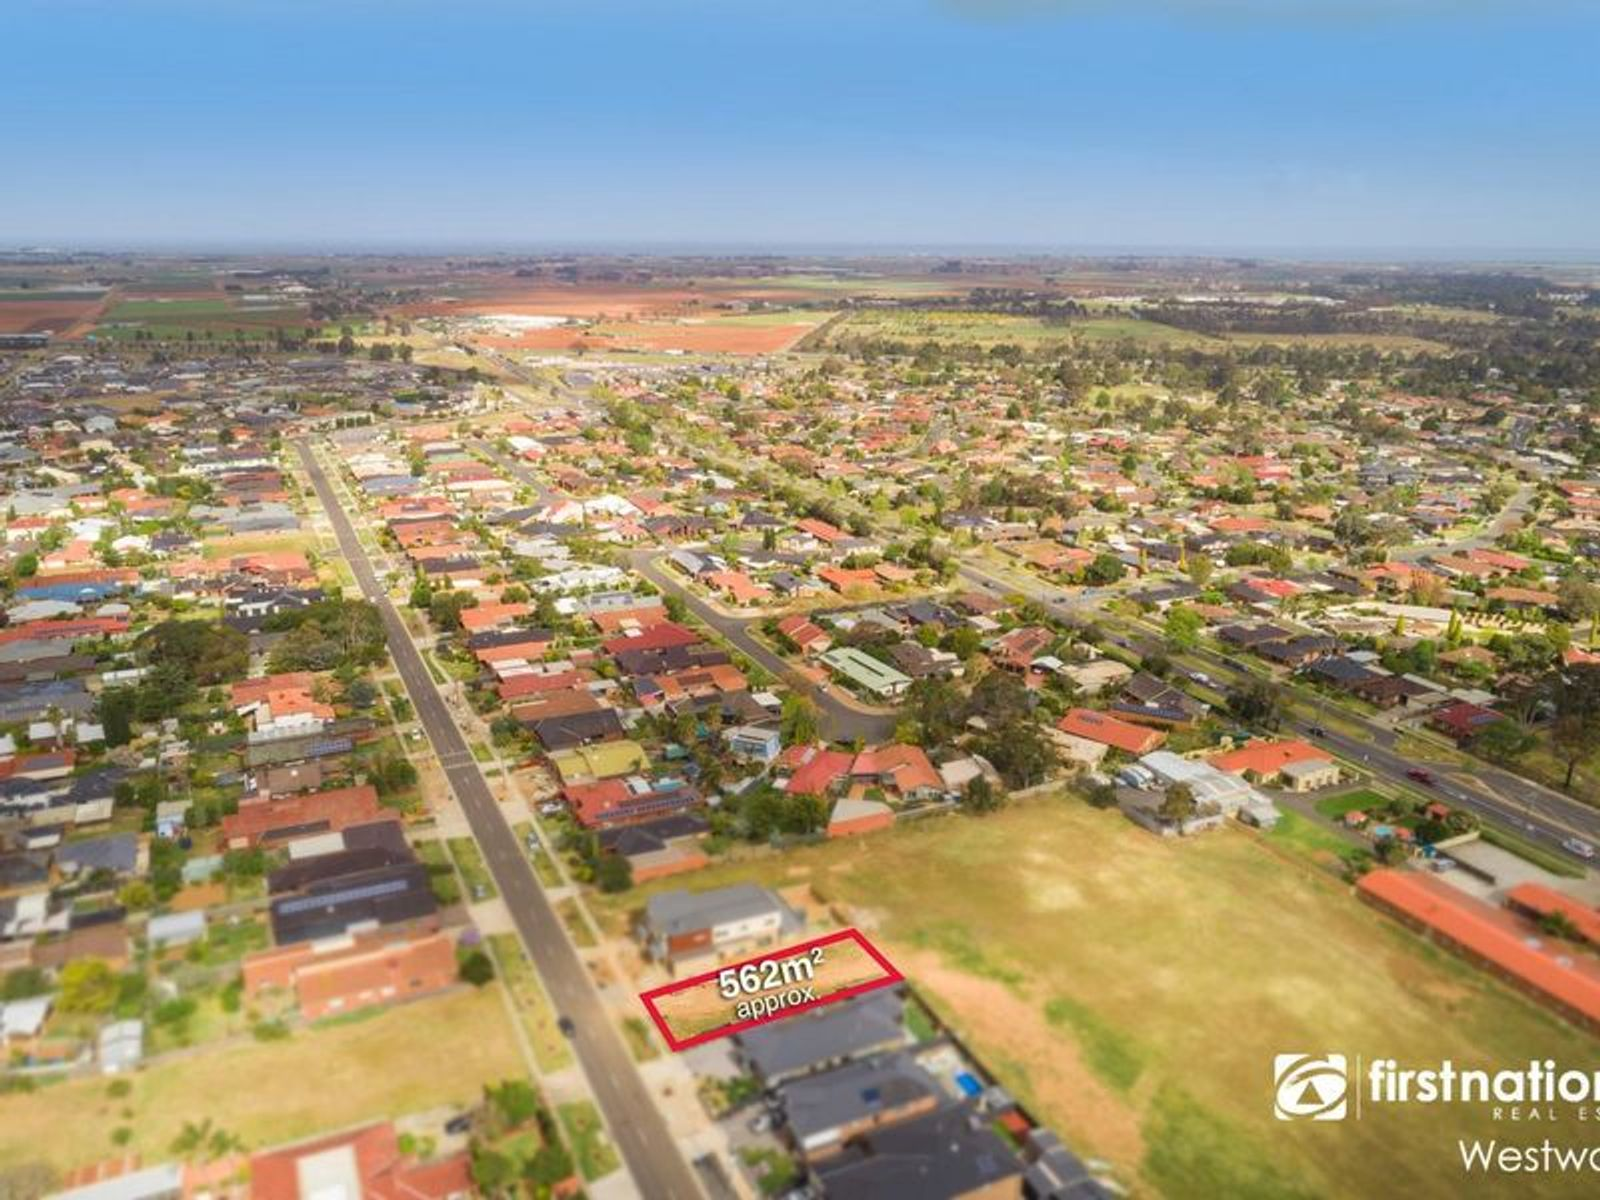 Lot 2/76 Tower Road, Werribee, VIC 3030